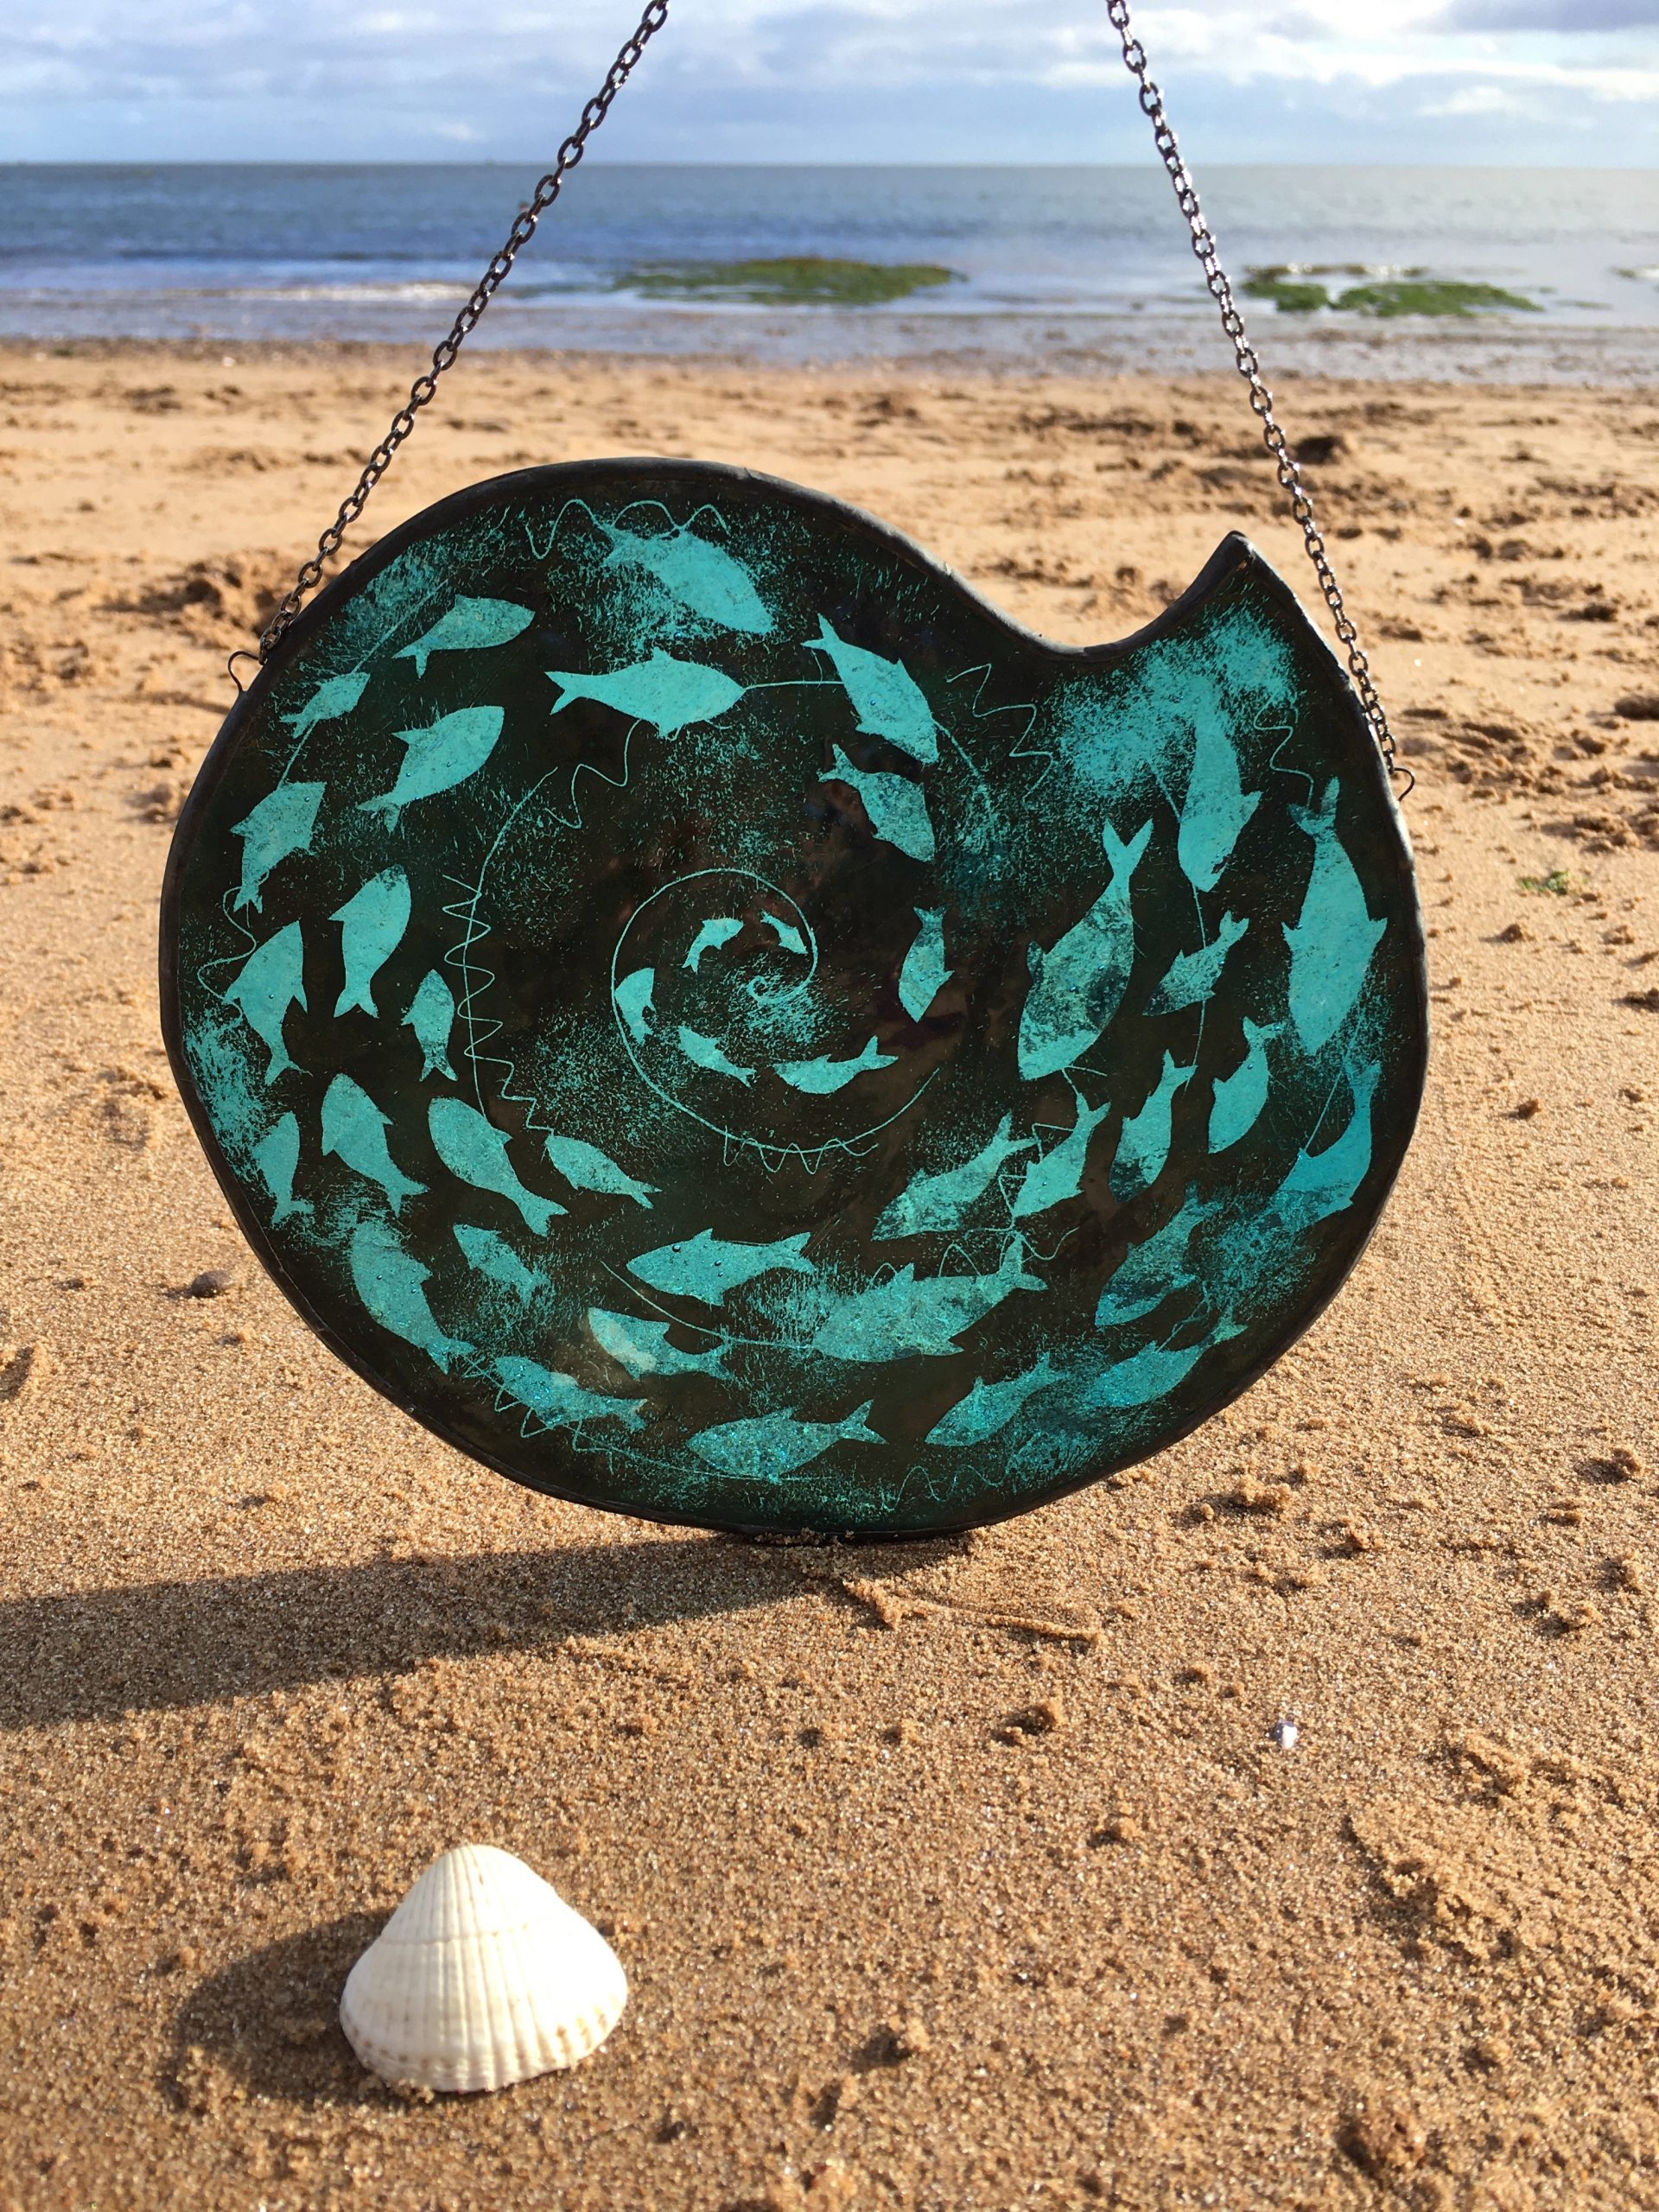 Stained glass fish spiral on beach